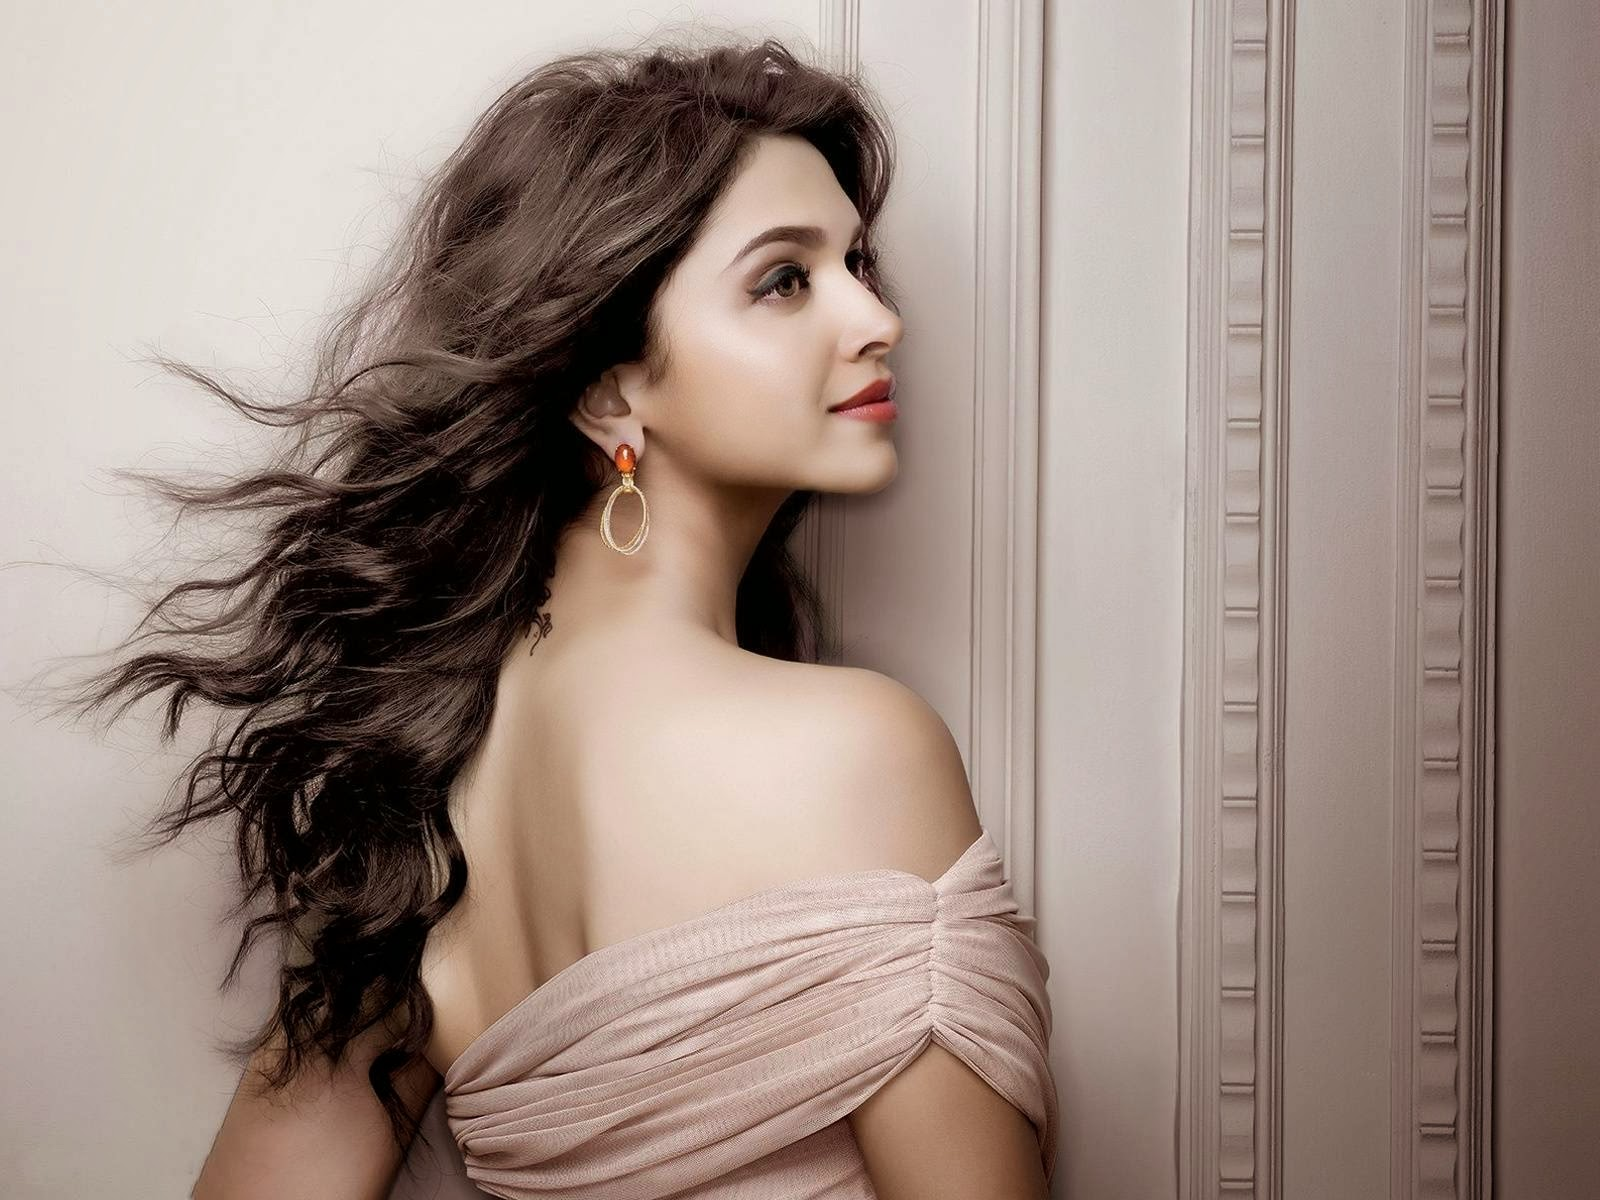 bollywood and hollywood beauti queens it is about deepika